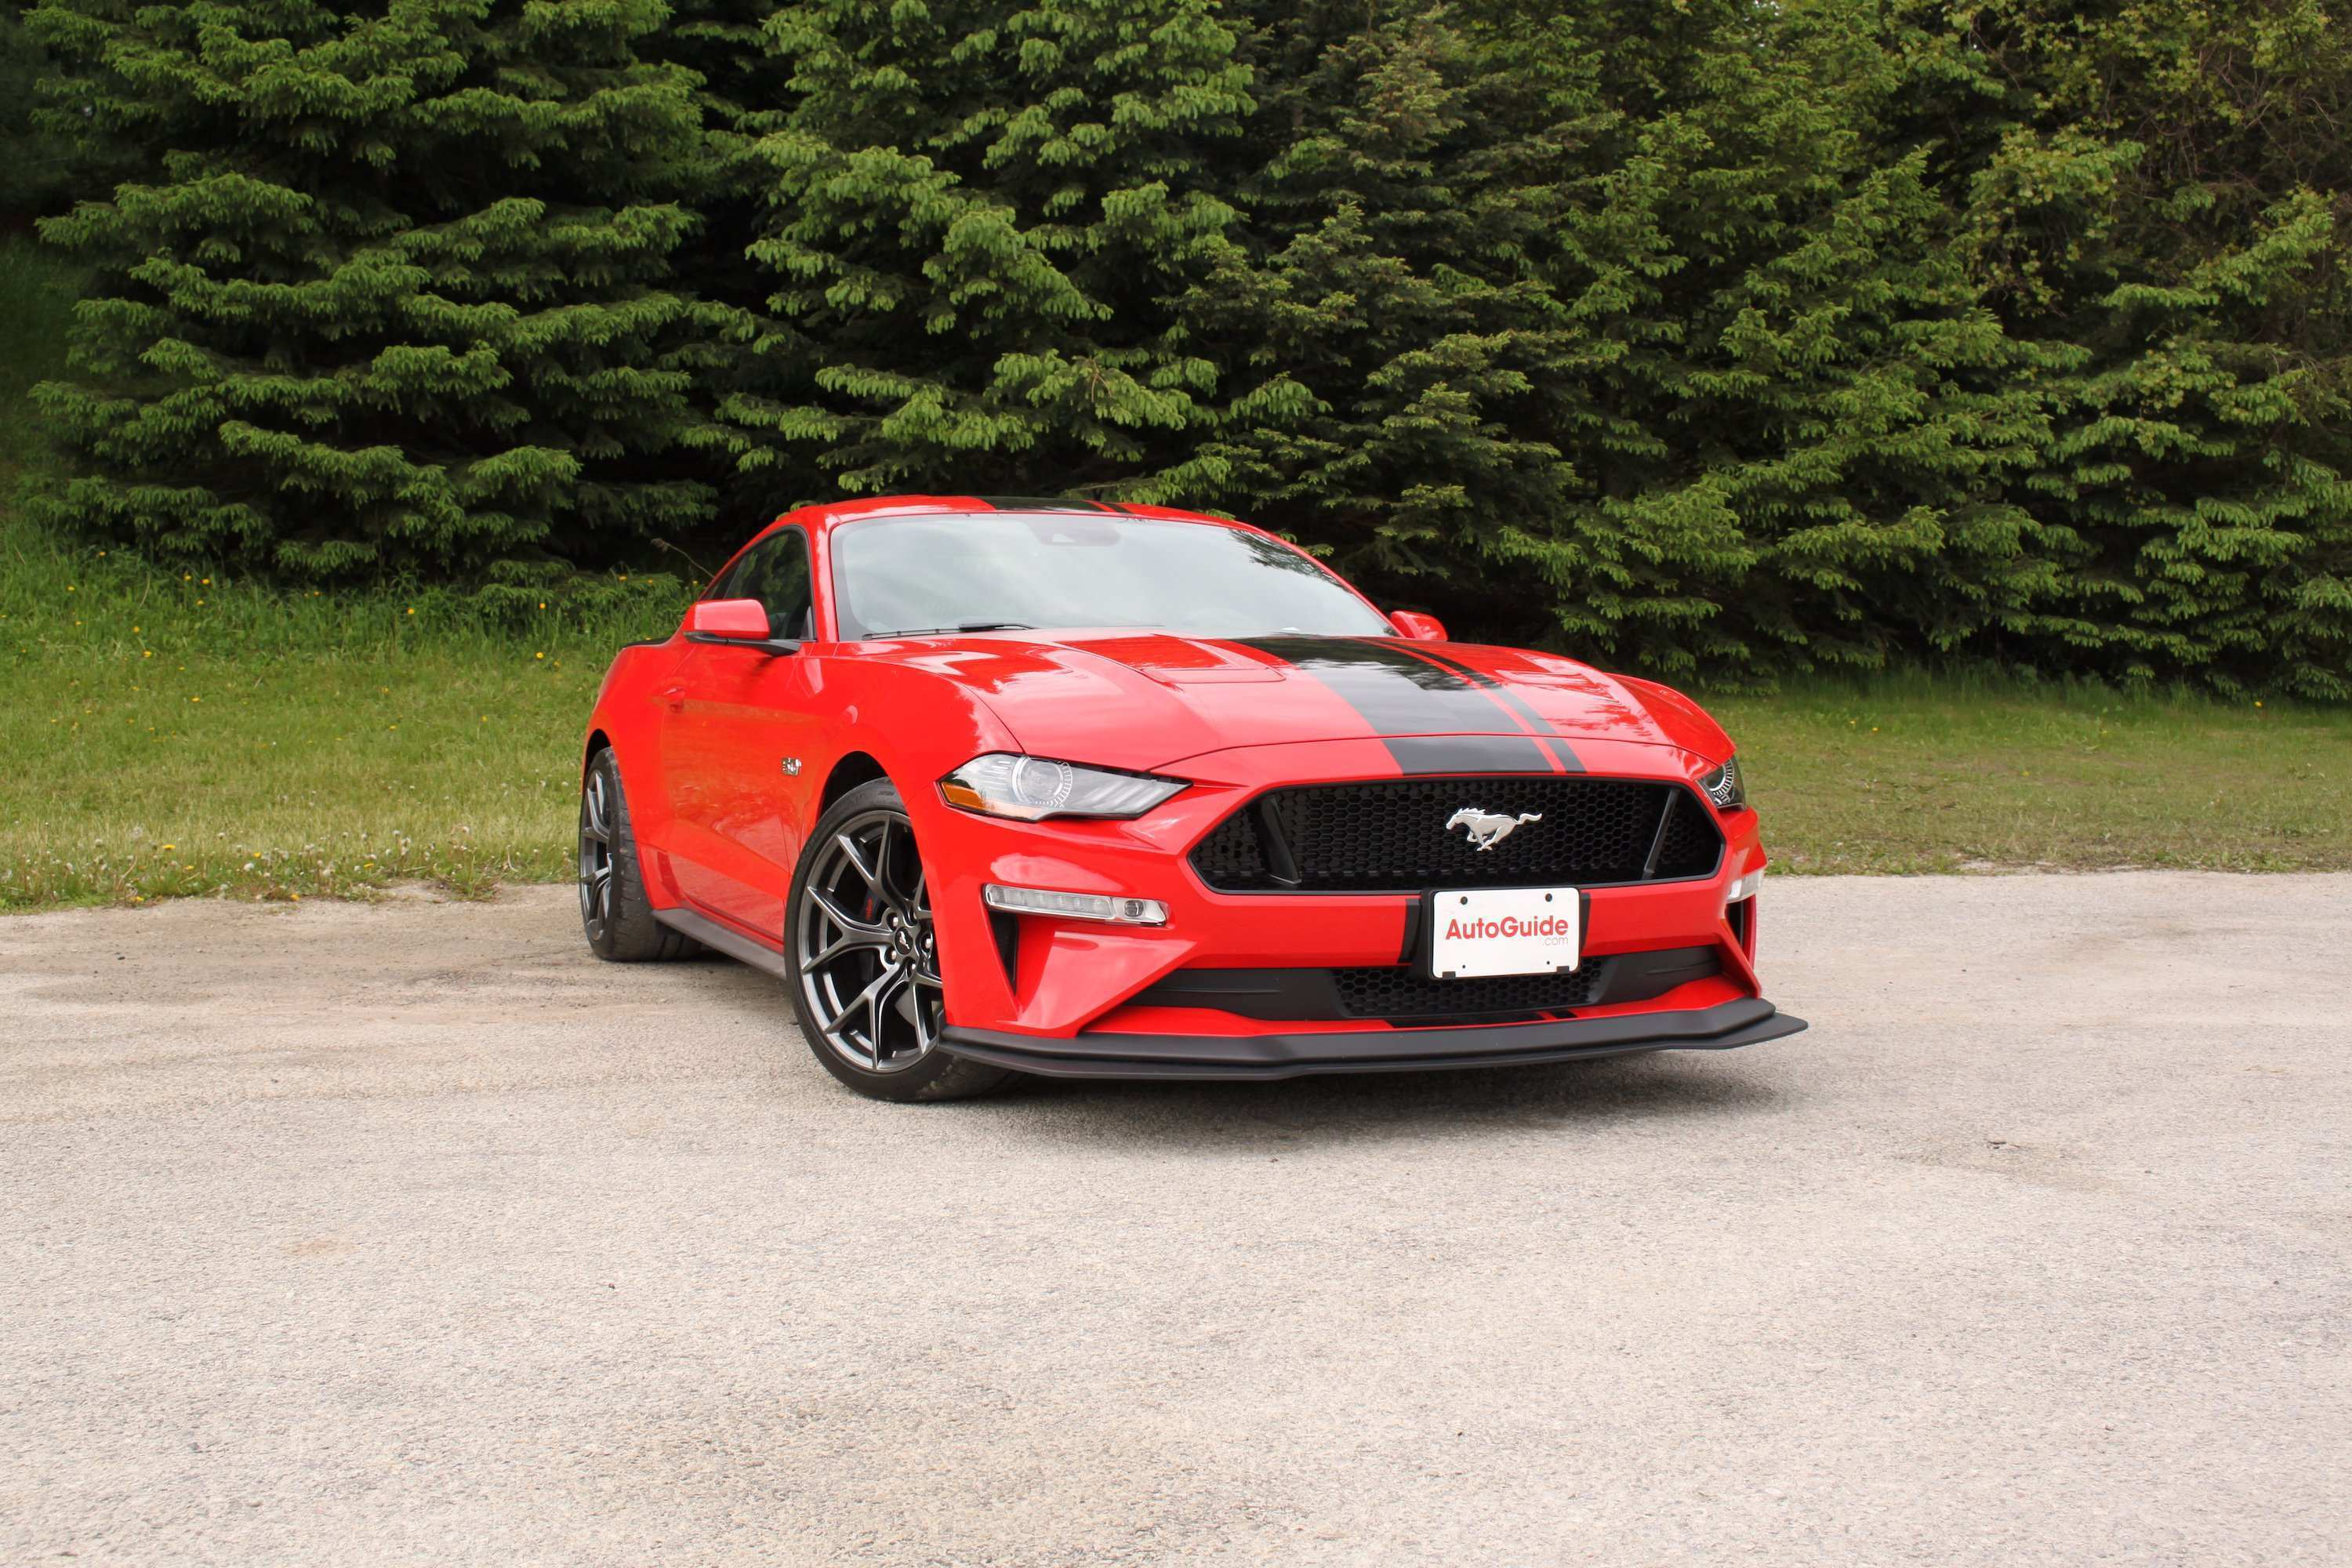 78 The Best 2020 Ford Mustang Gt Price And Review